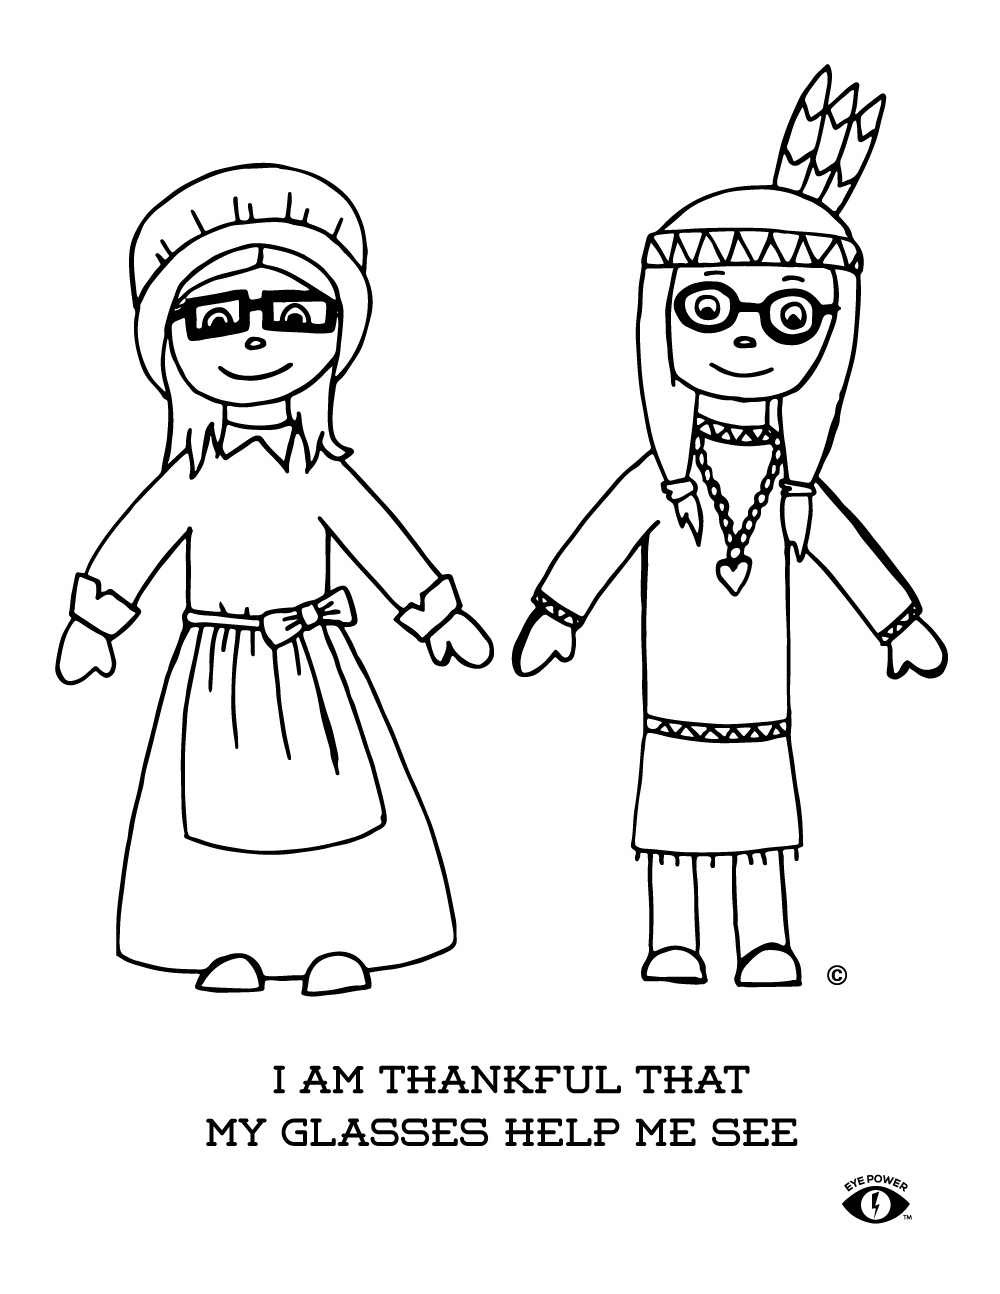 all-coloring-pages-6-